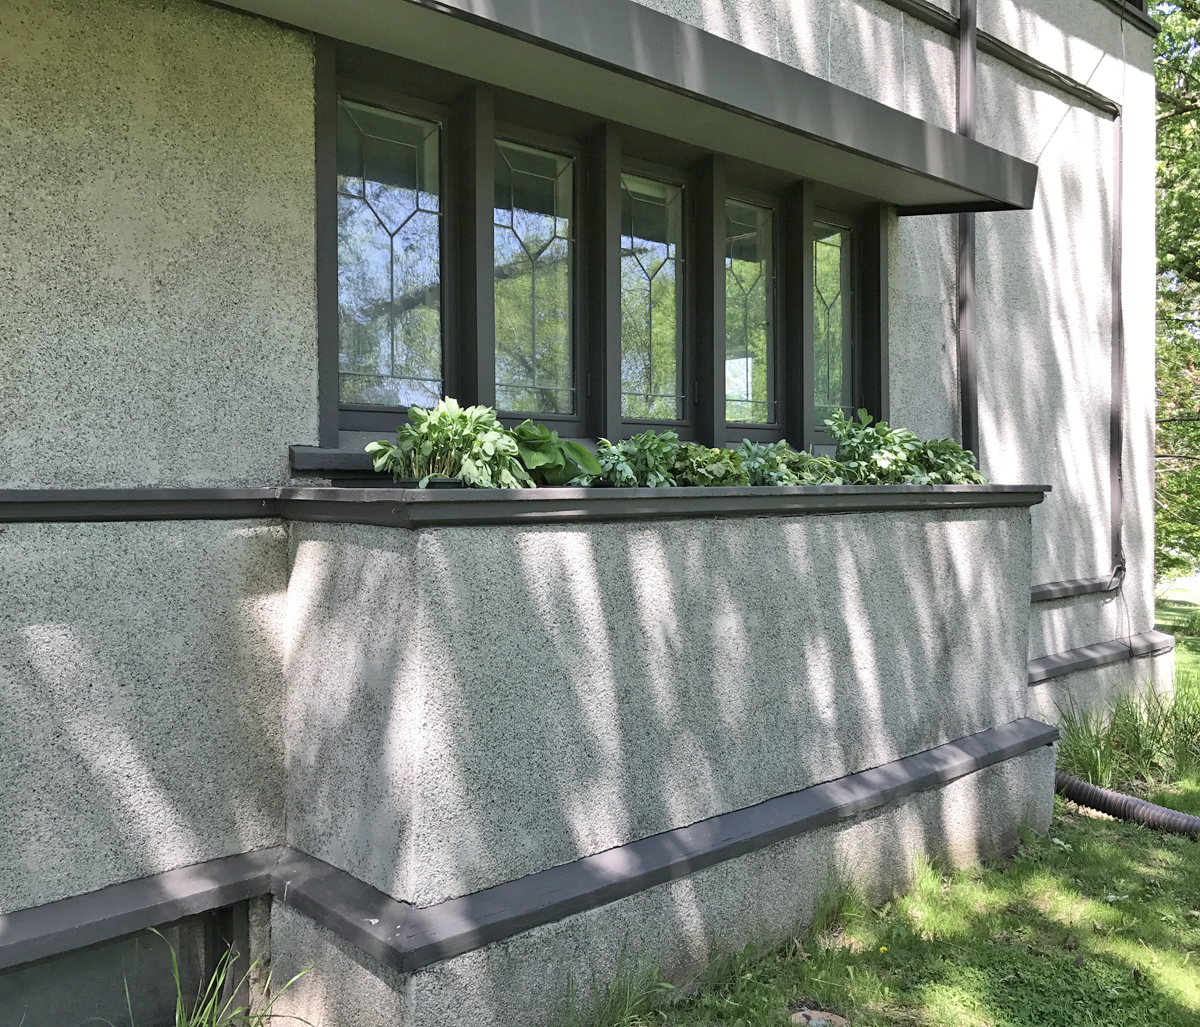 Window Box - American System Built Home